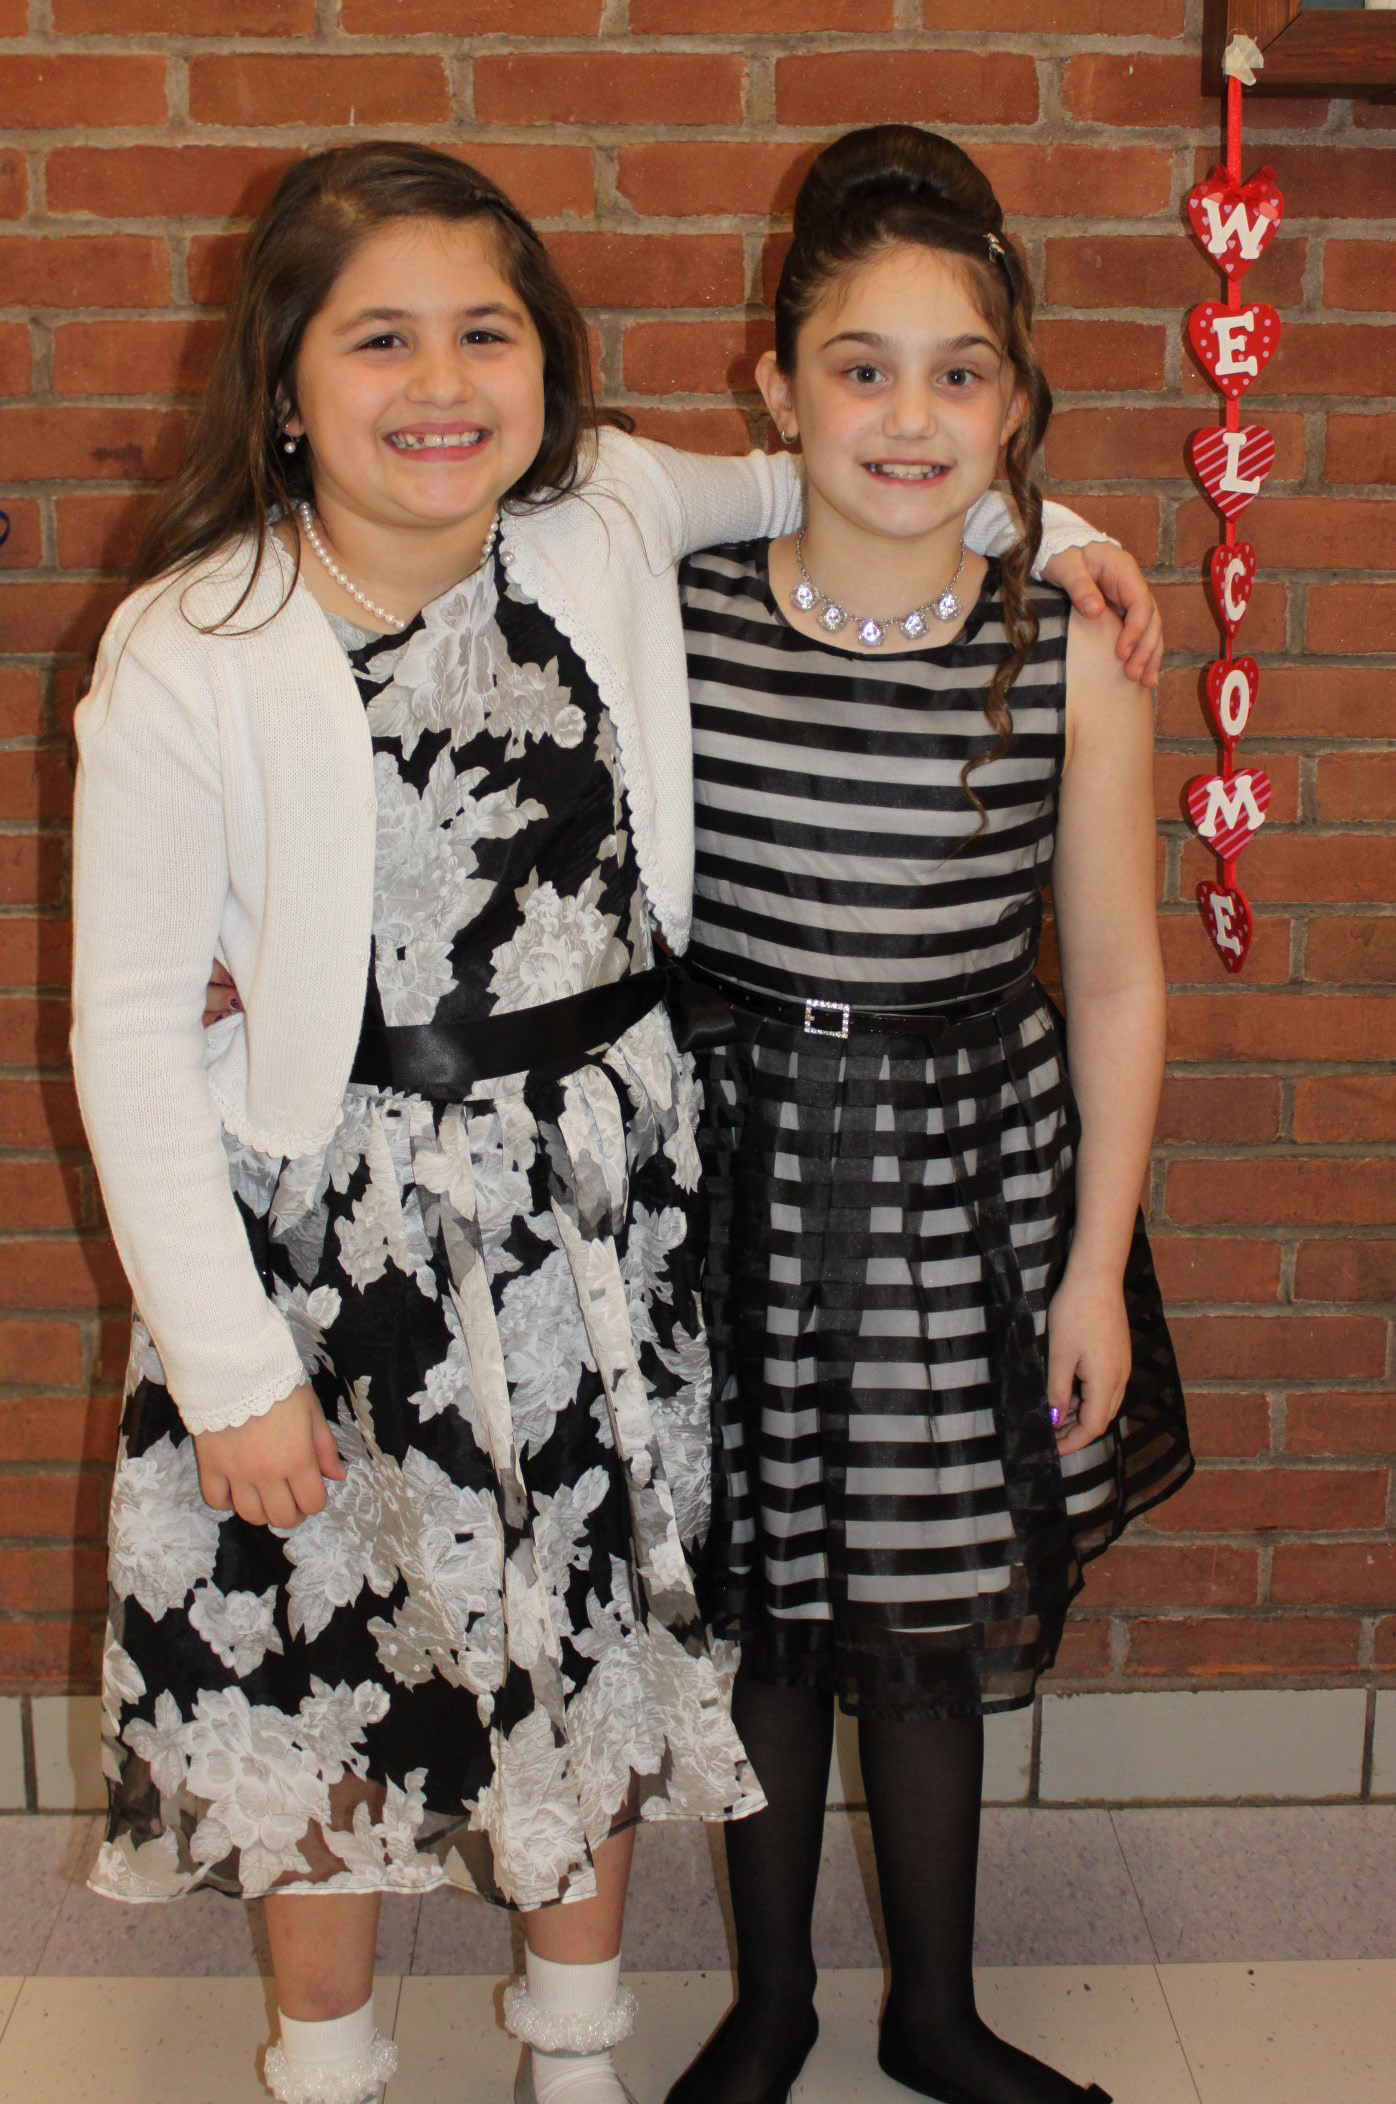 Fourth grade students Lucia Cavaliere and Alyssa Ferriaoulo have attended the annual dance since kindergarten.